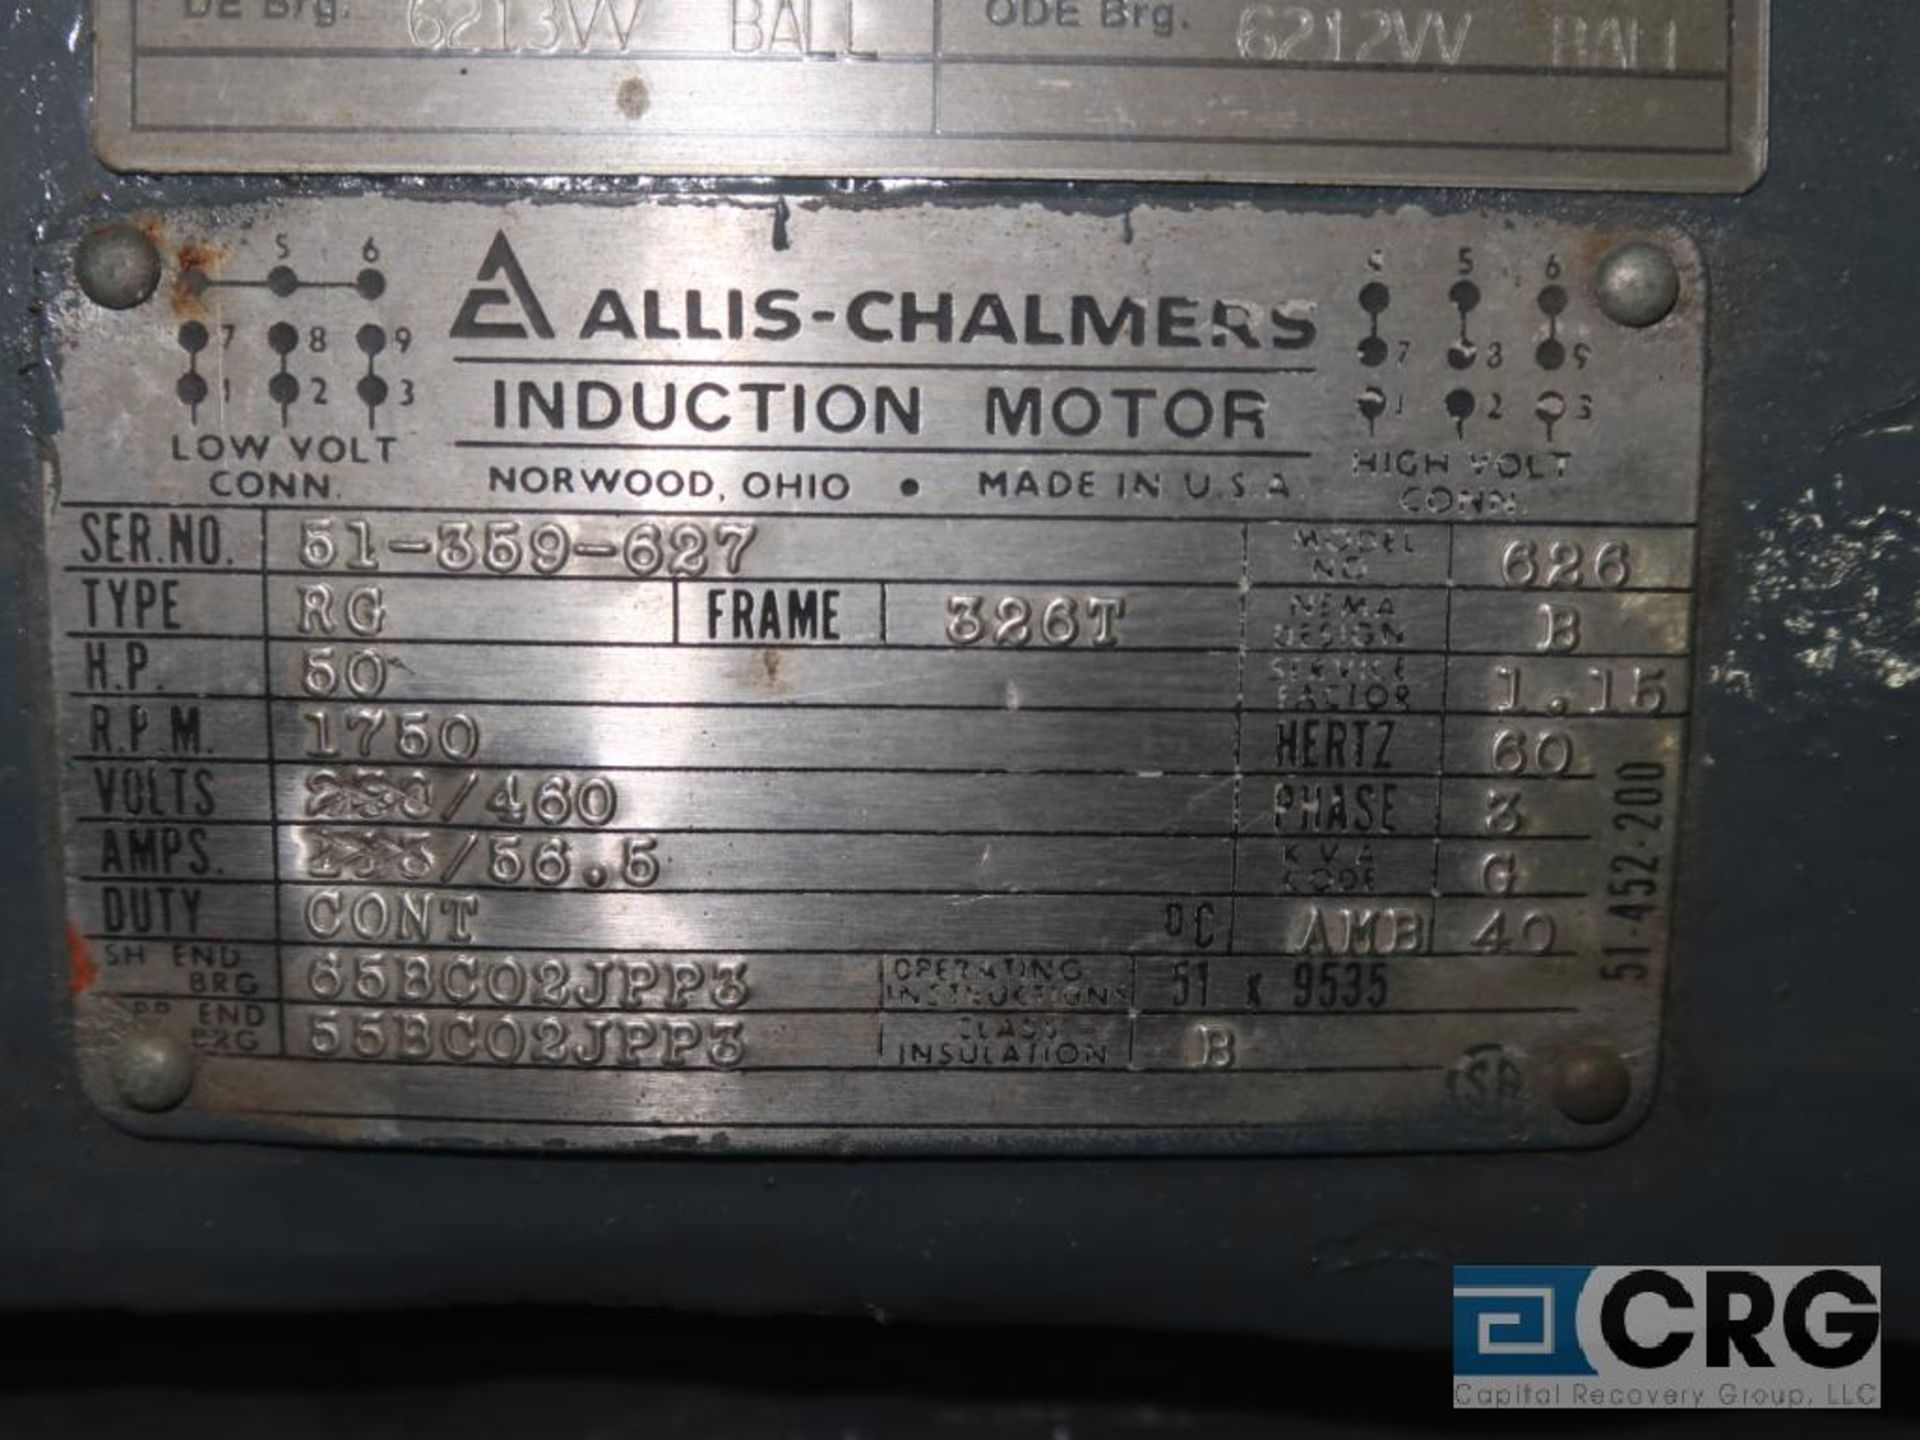 Allis-Chalmers induction motor, 50 HP, 1,750 RPMs, 460 volt, 3 ph., 326T frame (Finish Building) - Image 2 of 2